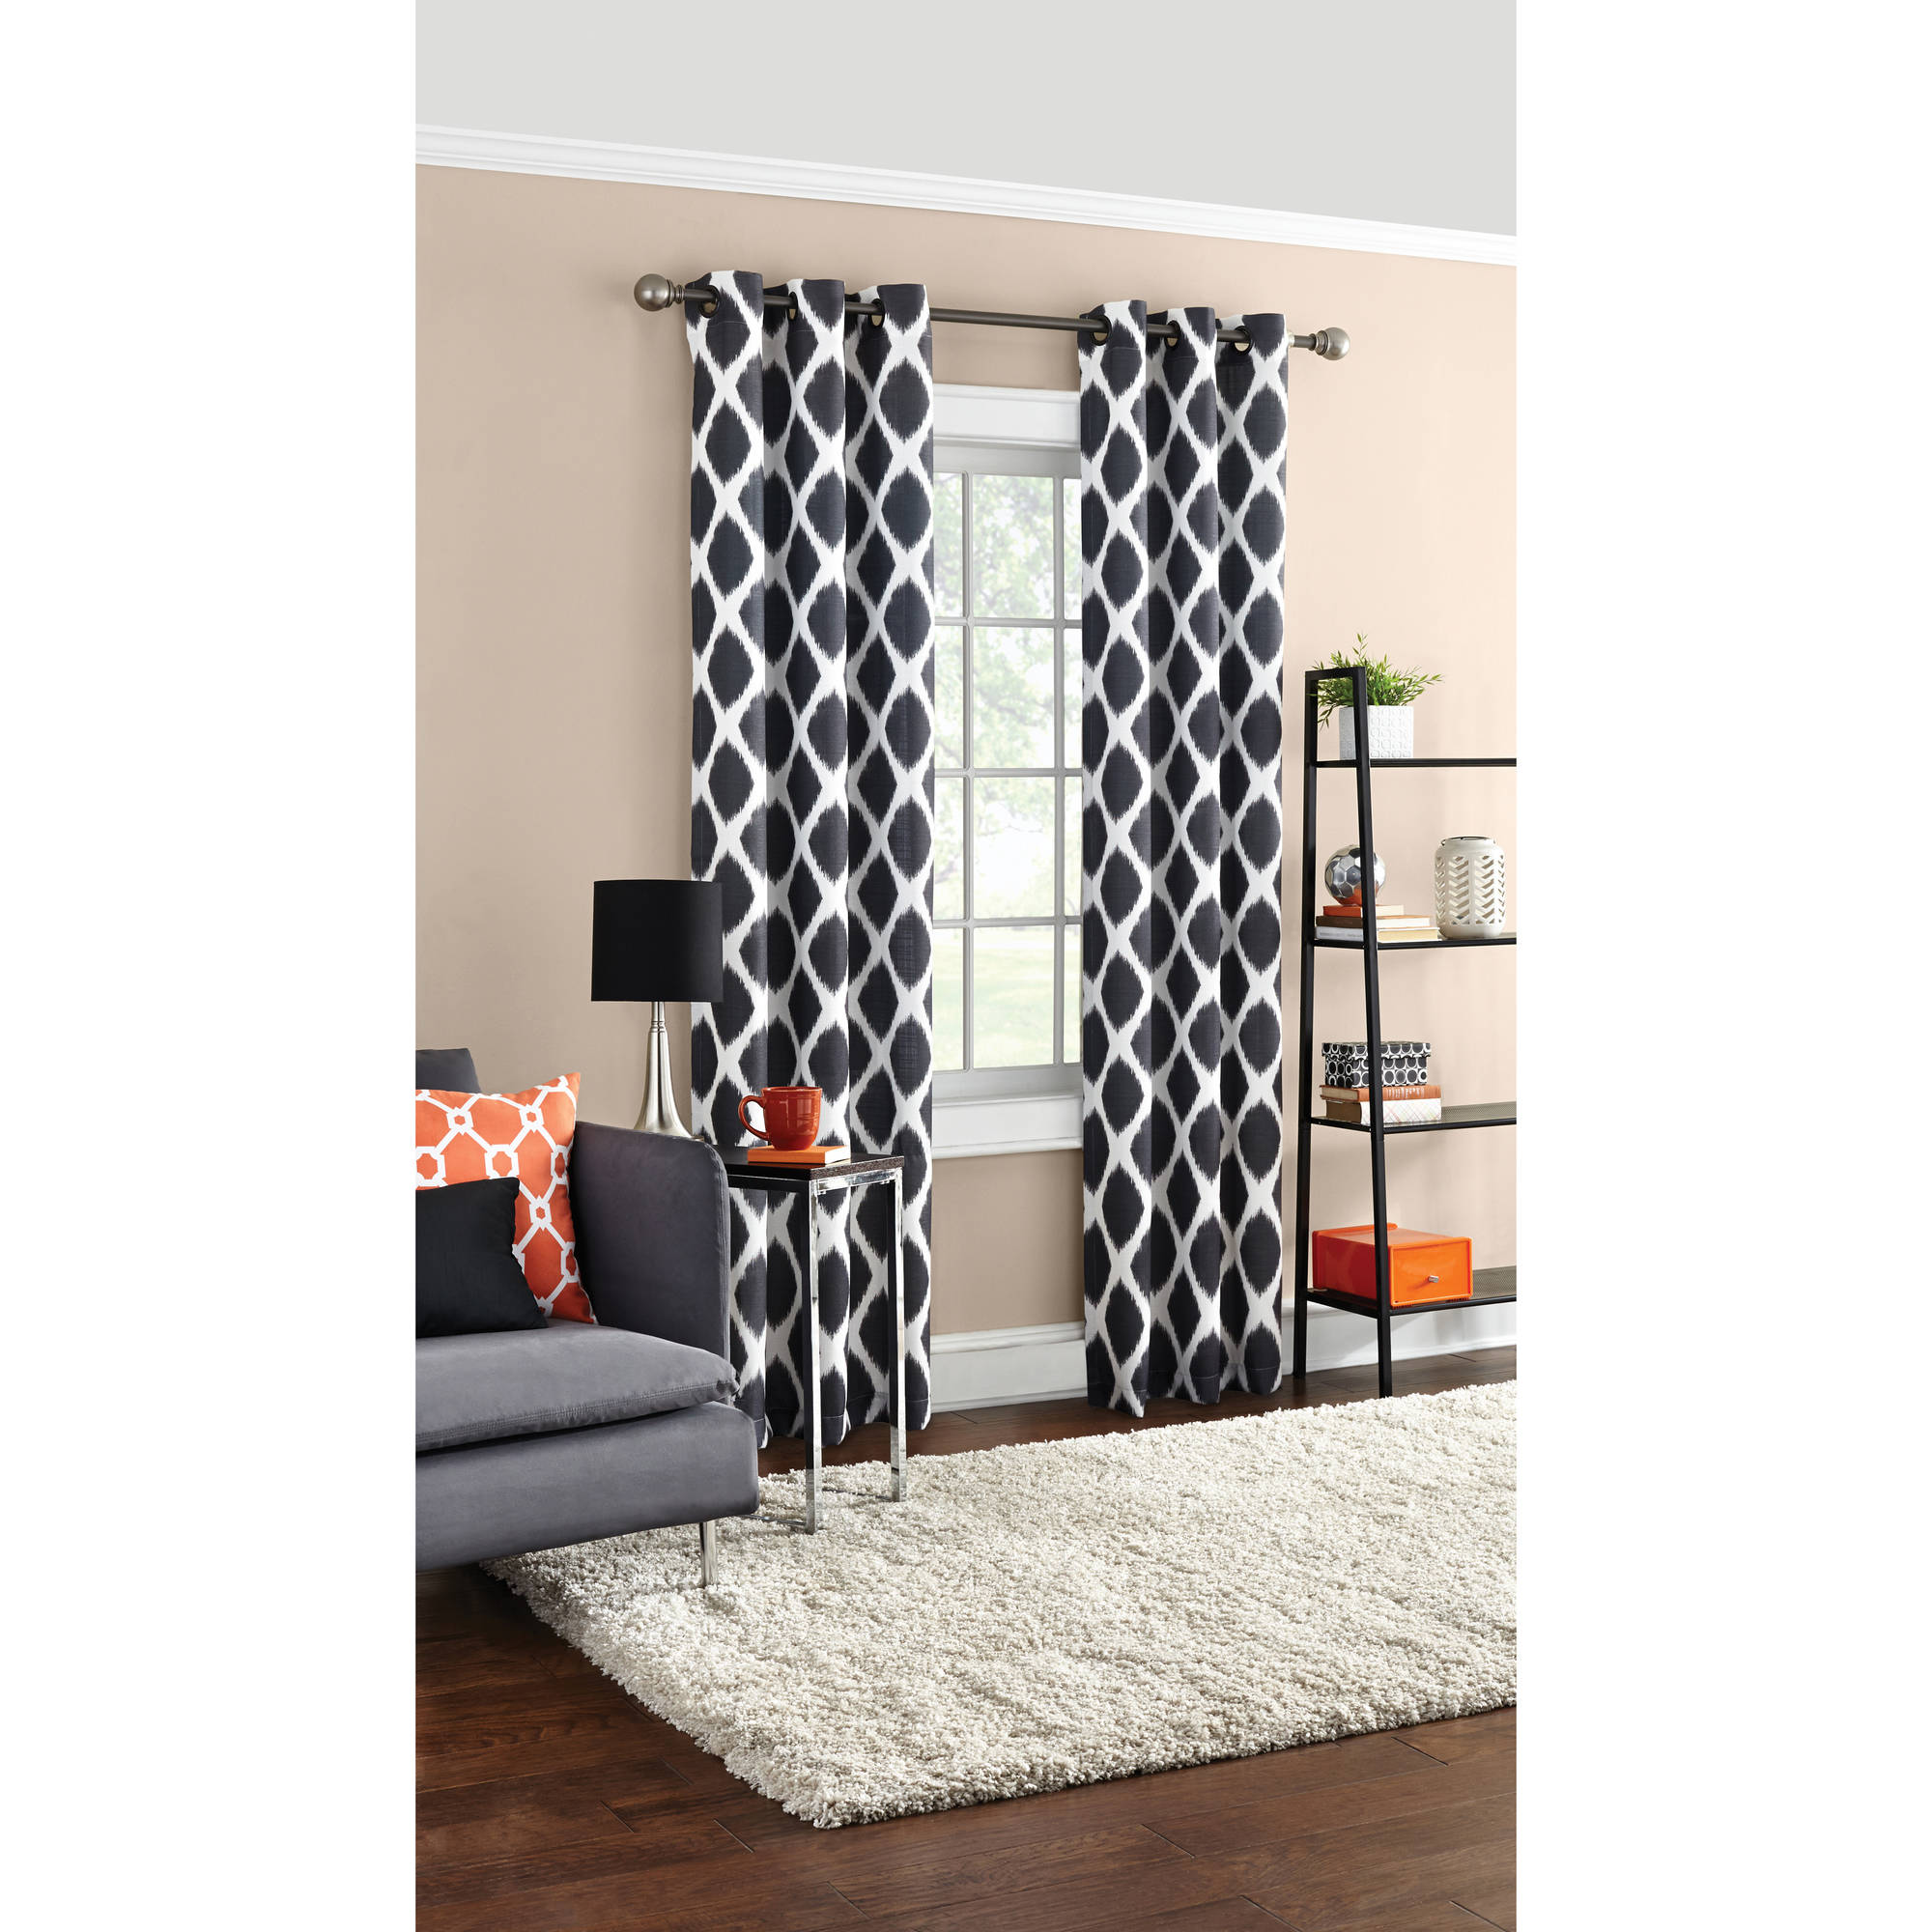 New Mainstays Textured Grommet Curtain Panel - Walmart.com TU87